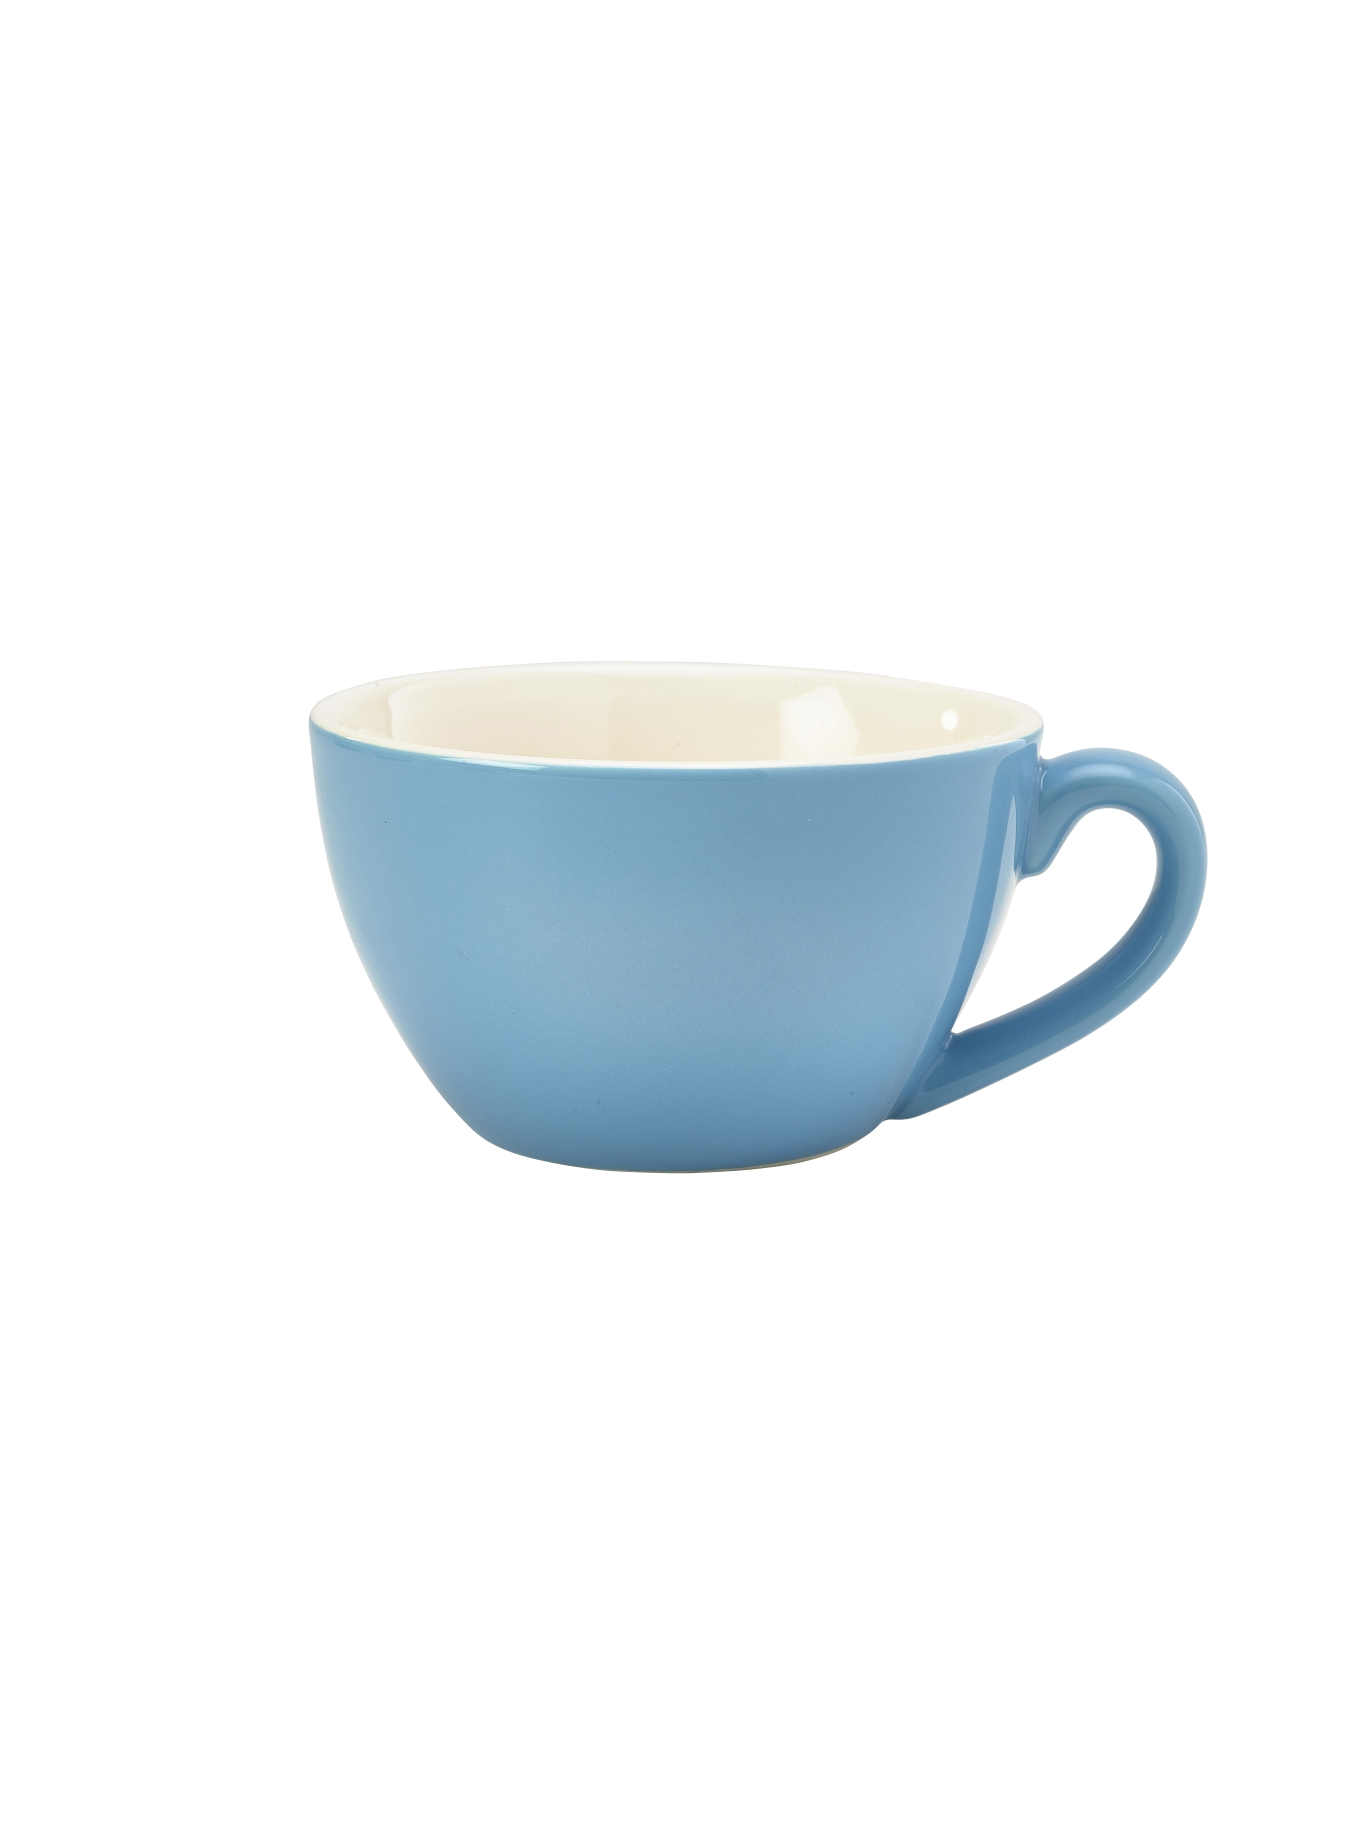 Genware Porcelain Bowl Shaped Cup 34cl Blue